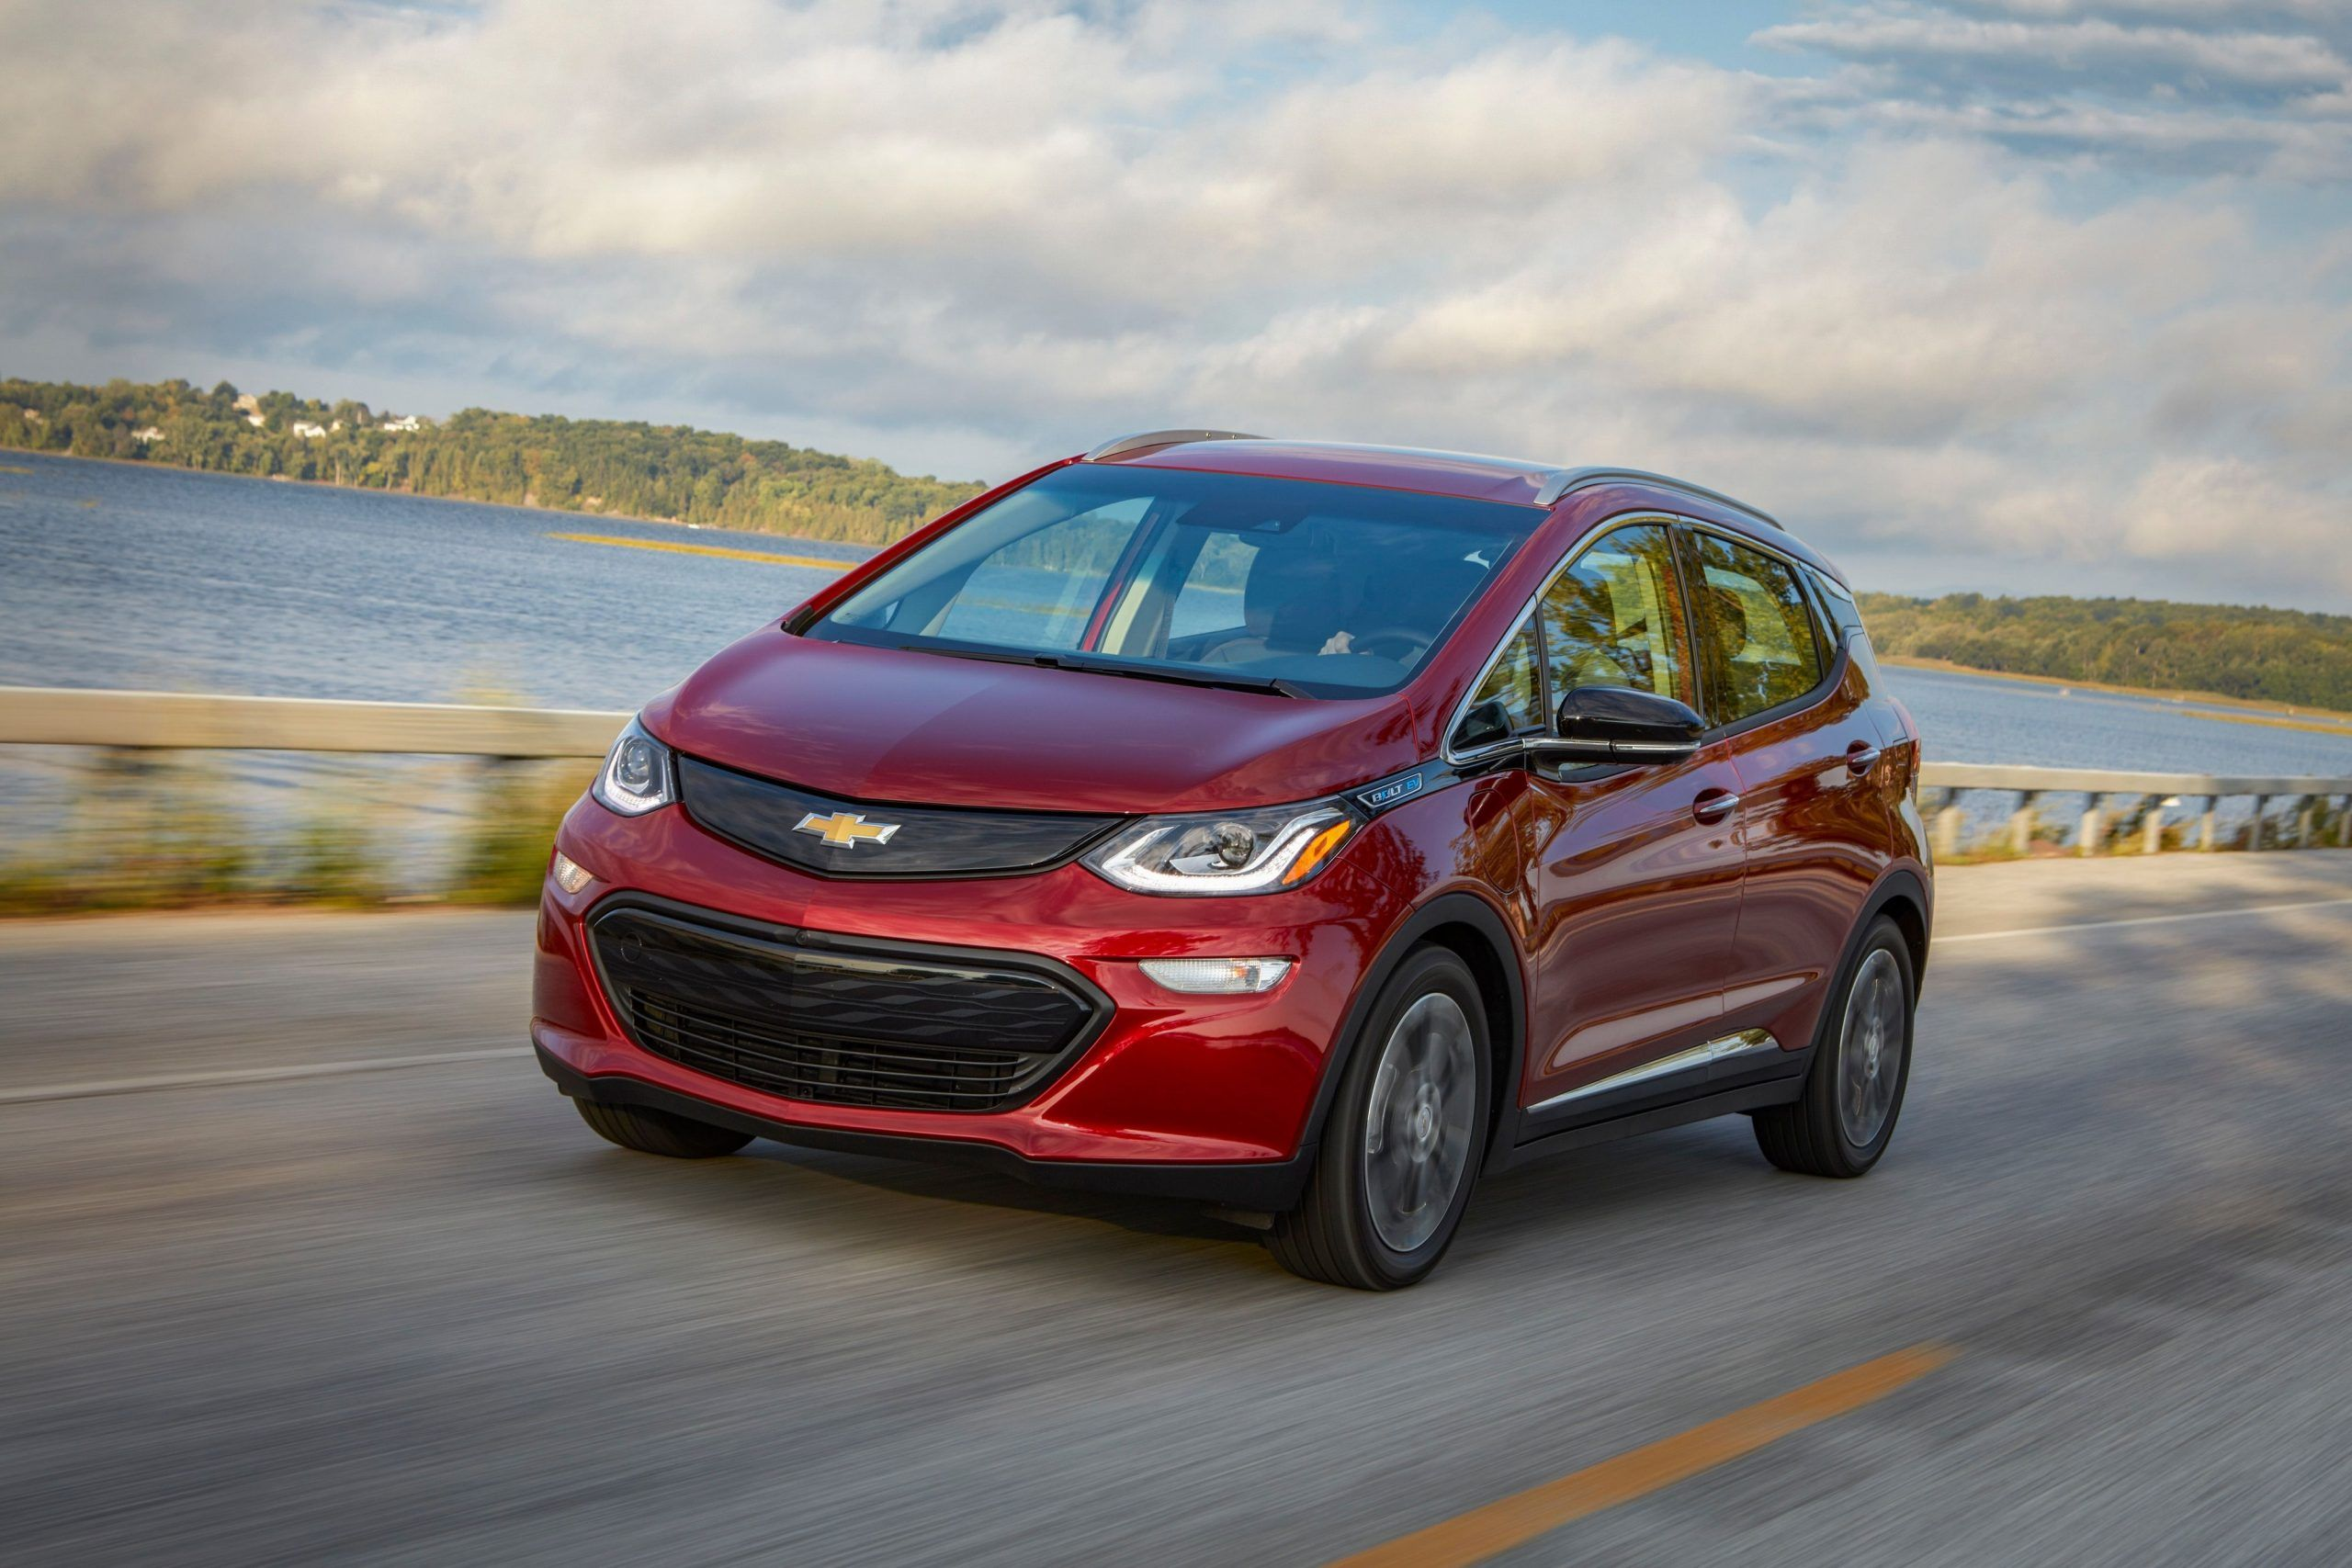 2020 Chevy Bolt Prices in 2020 Chevy bolt, Chevrolet